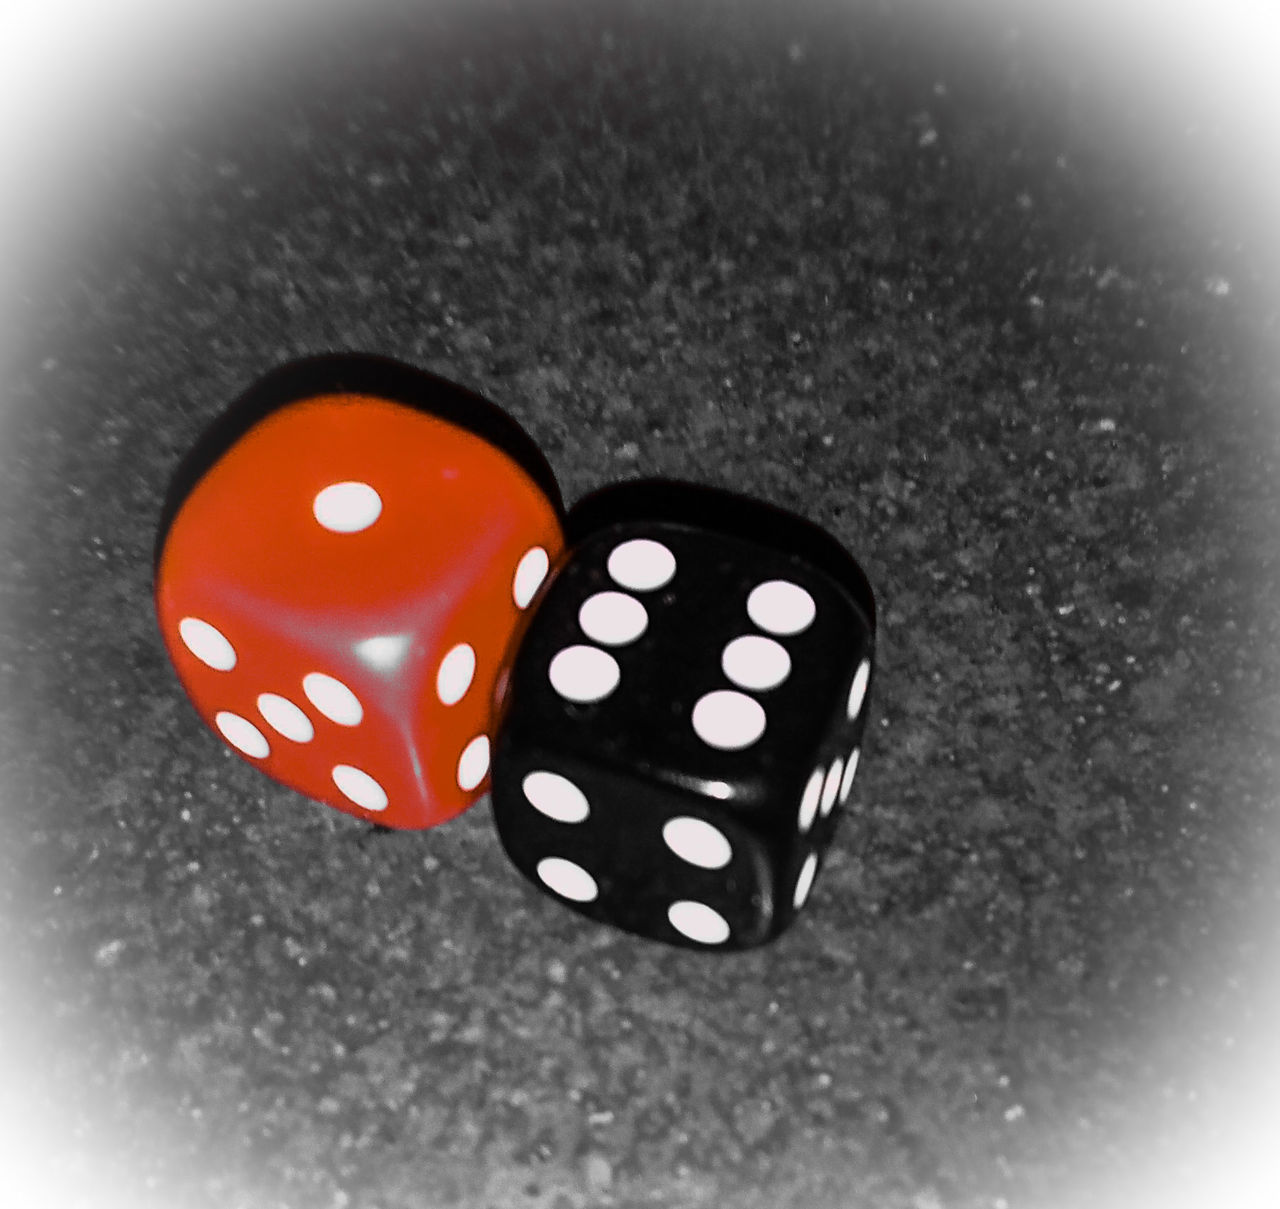 spotted, dice, polka dot, gambling, luck, close-up, indoors, no people, leisure games, pattern, black color, chance, day